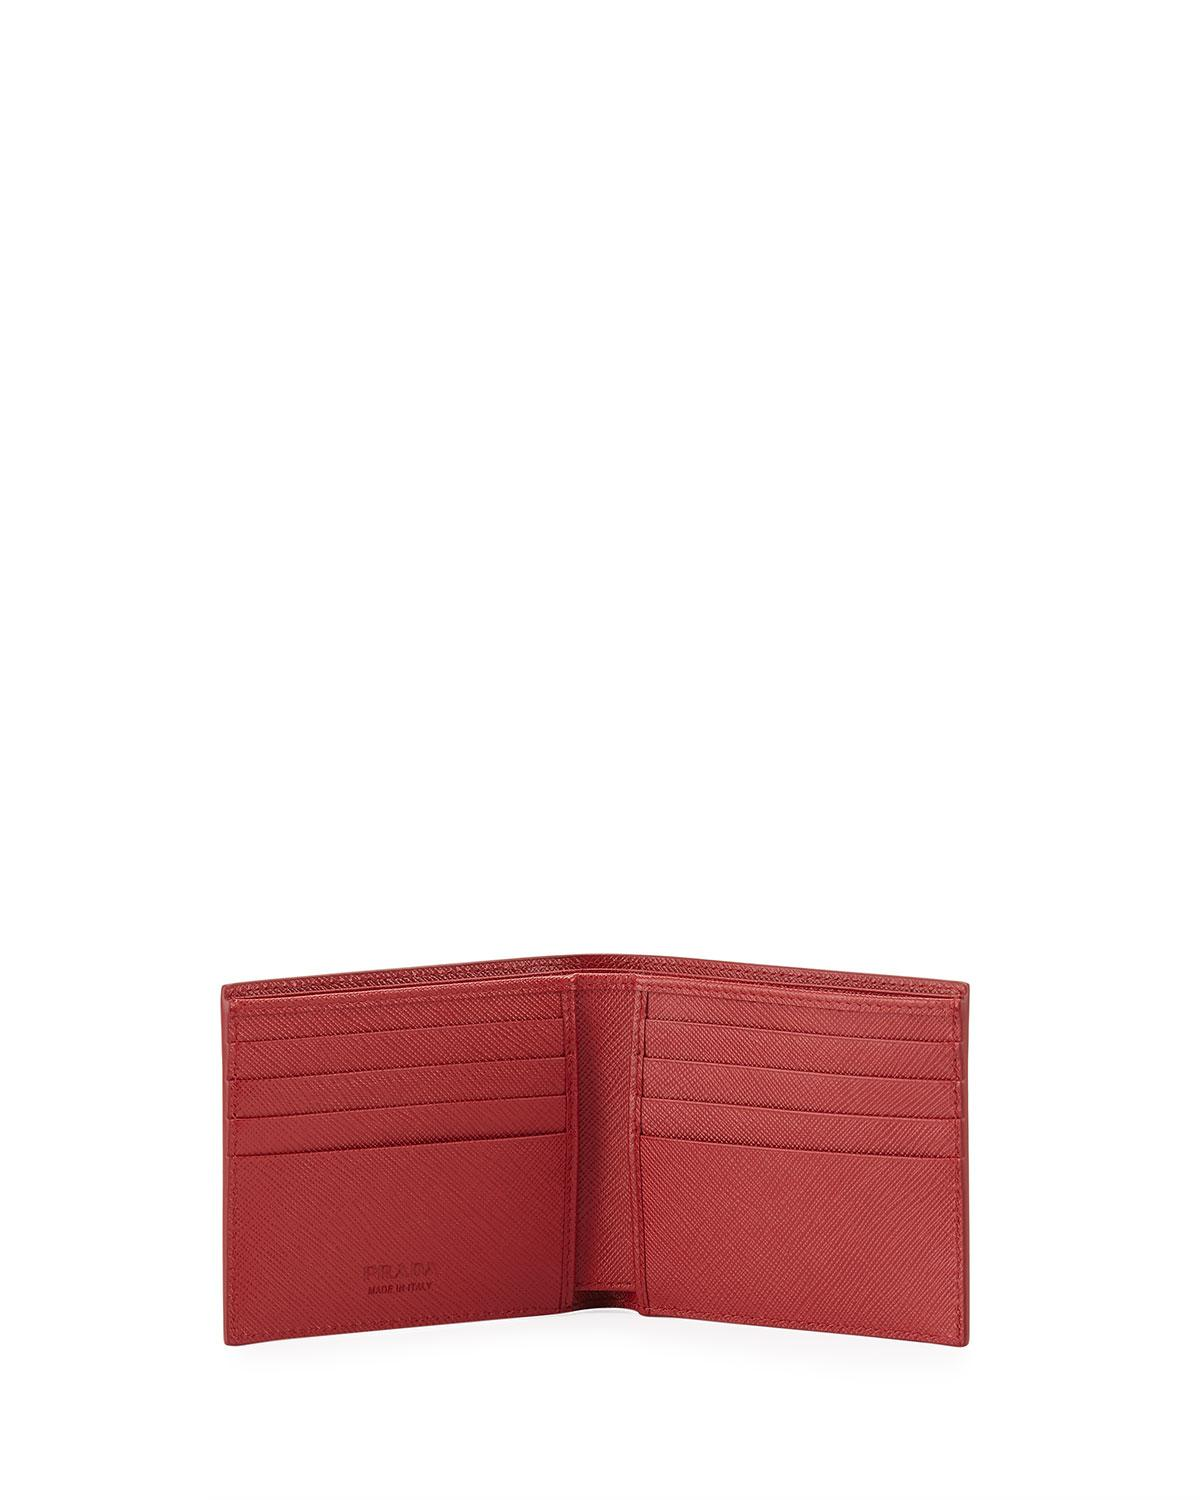 75fecea6f60b Lyst - Prada Stamped Classic Wallet in Red for Men